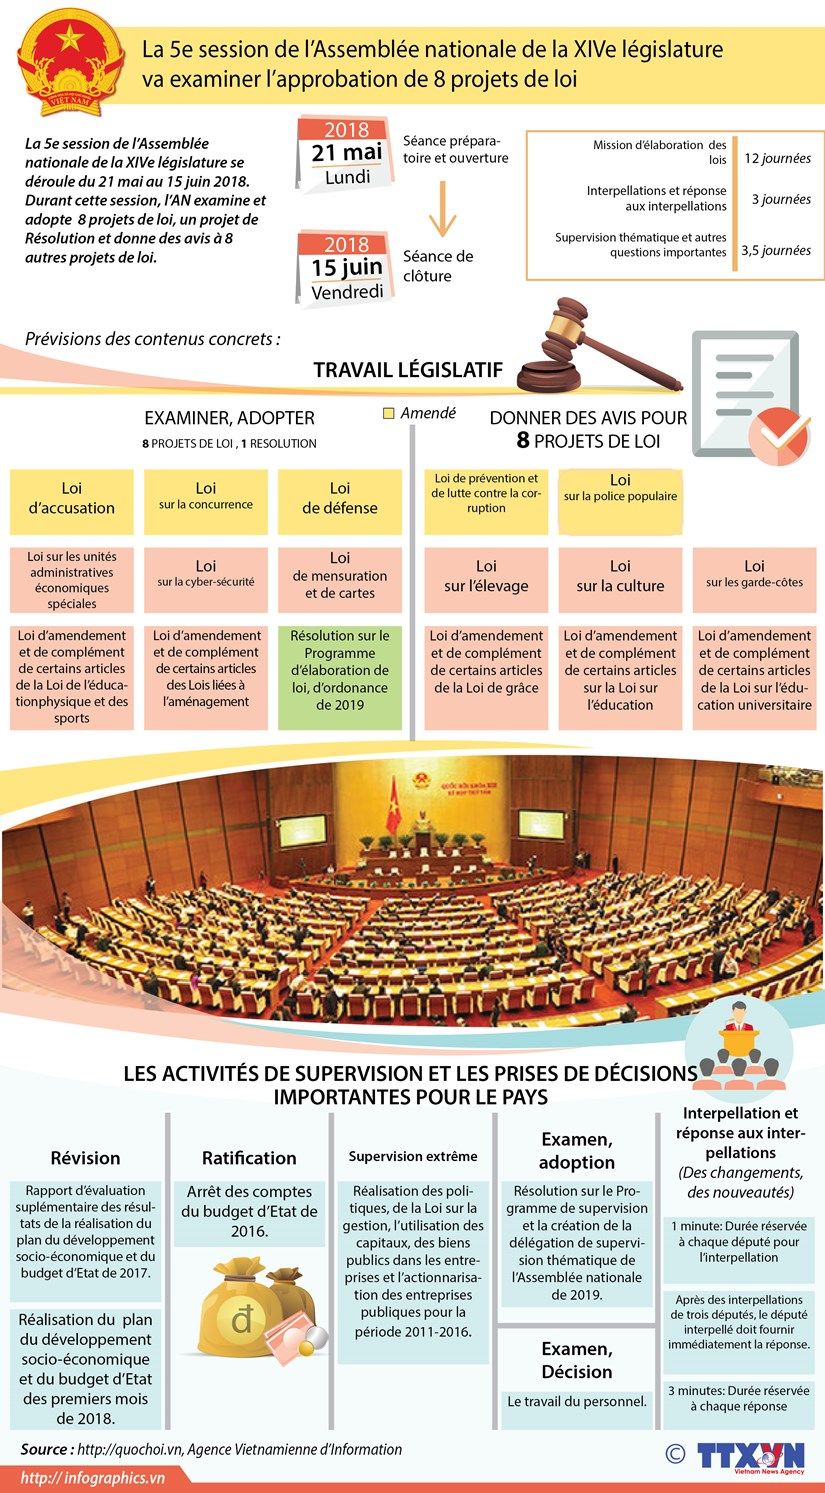 La 5e session de l'Assemblee nationale de la XIVe legislature hinh anh 1